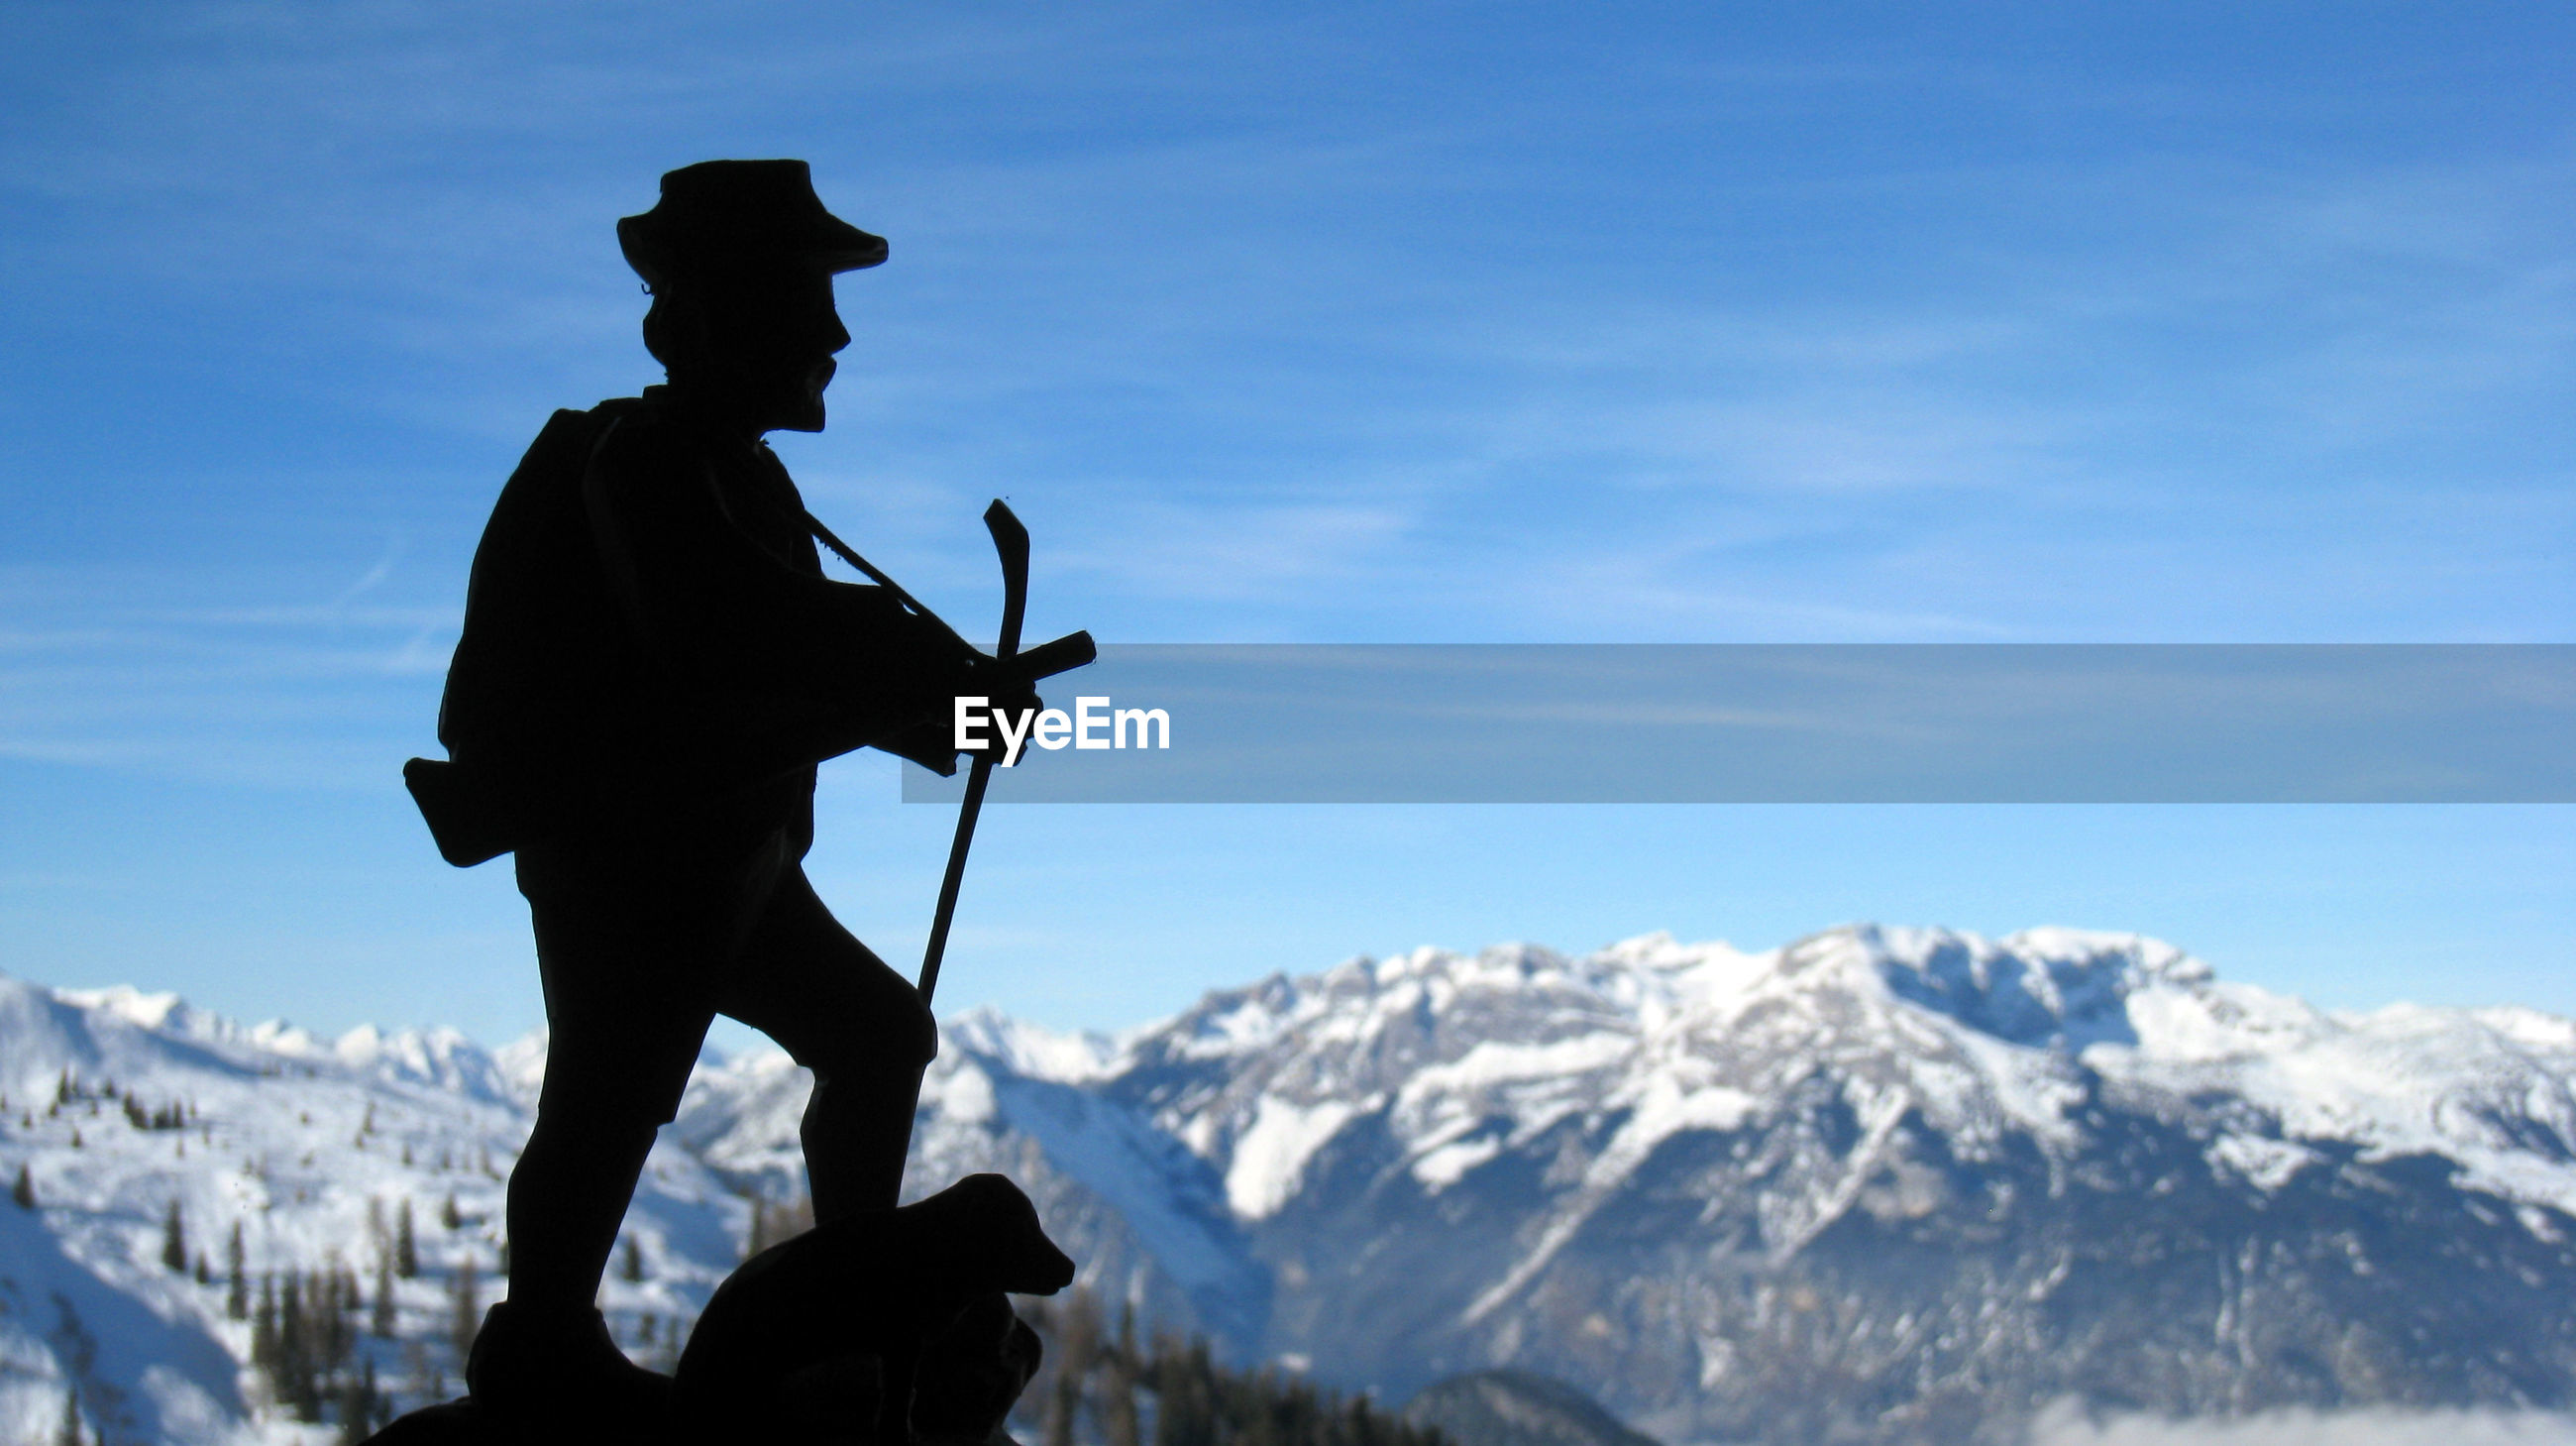 Silhouette figurine by snow covered mountains against sky